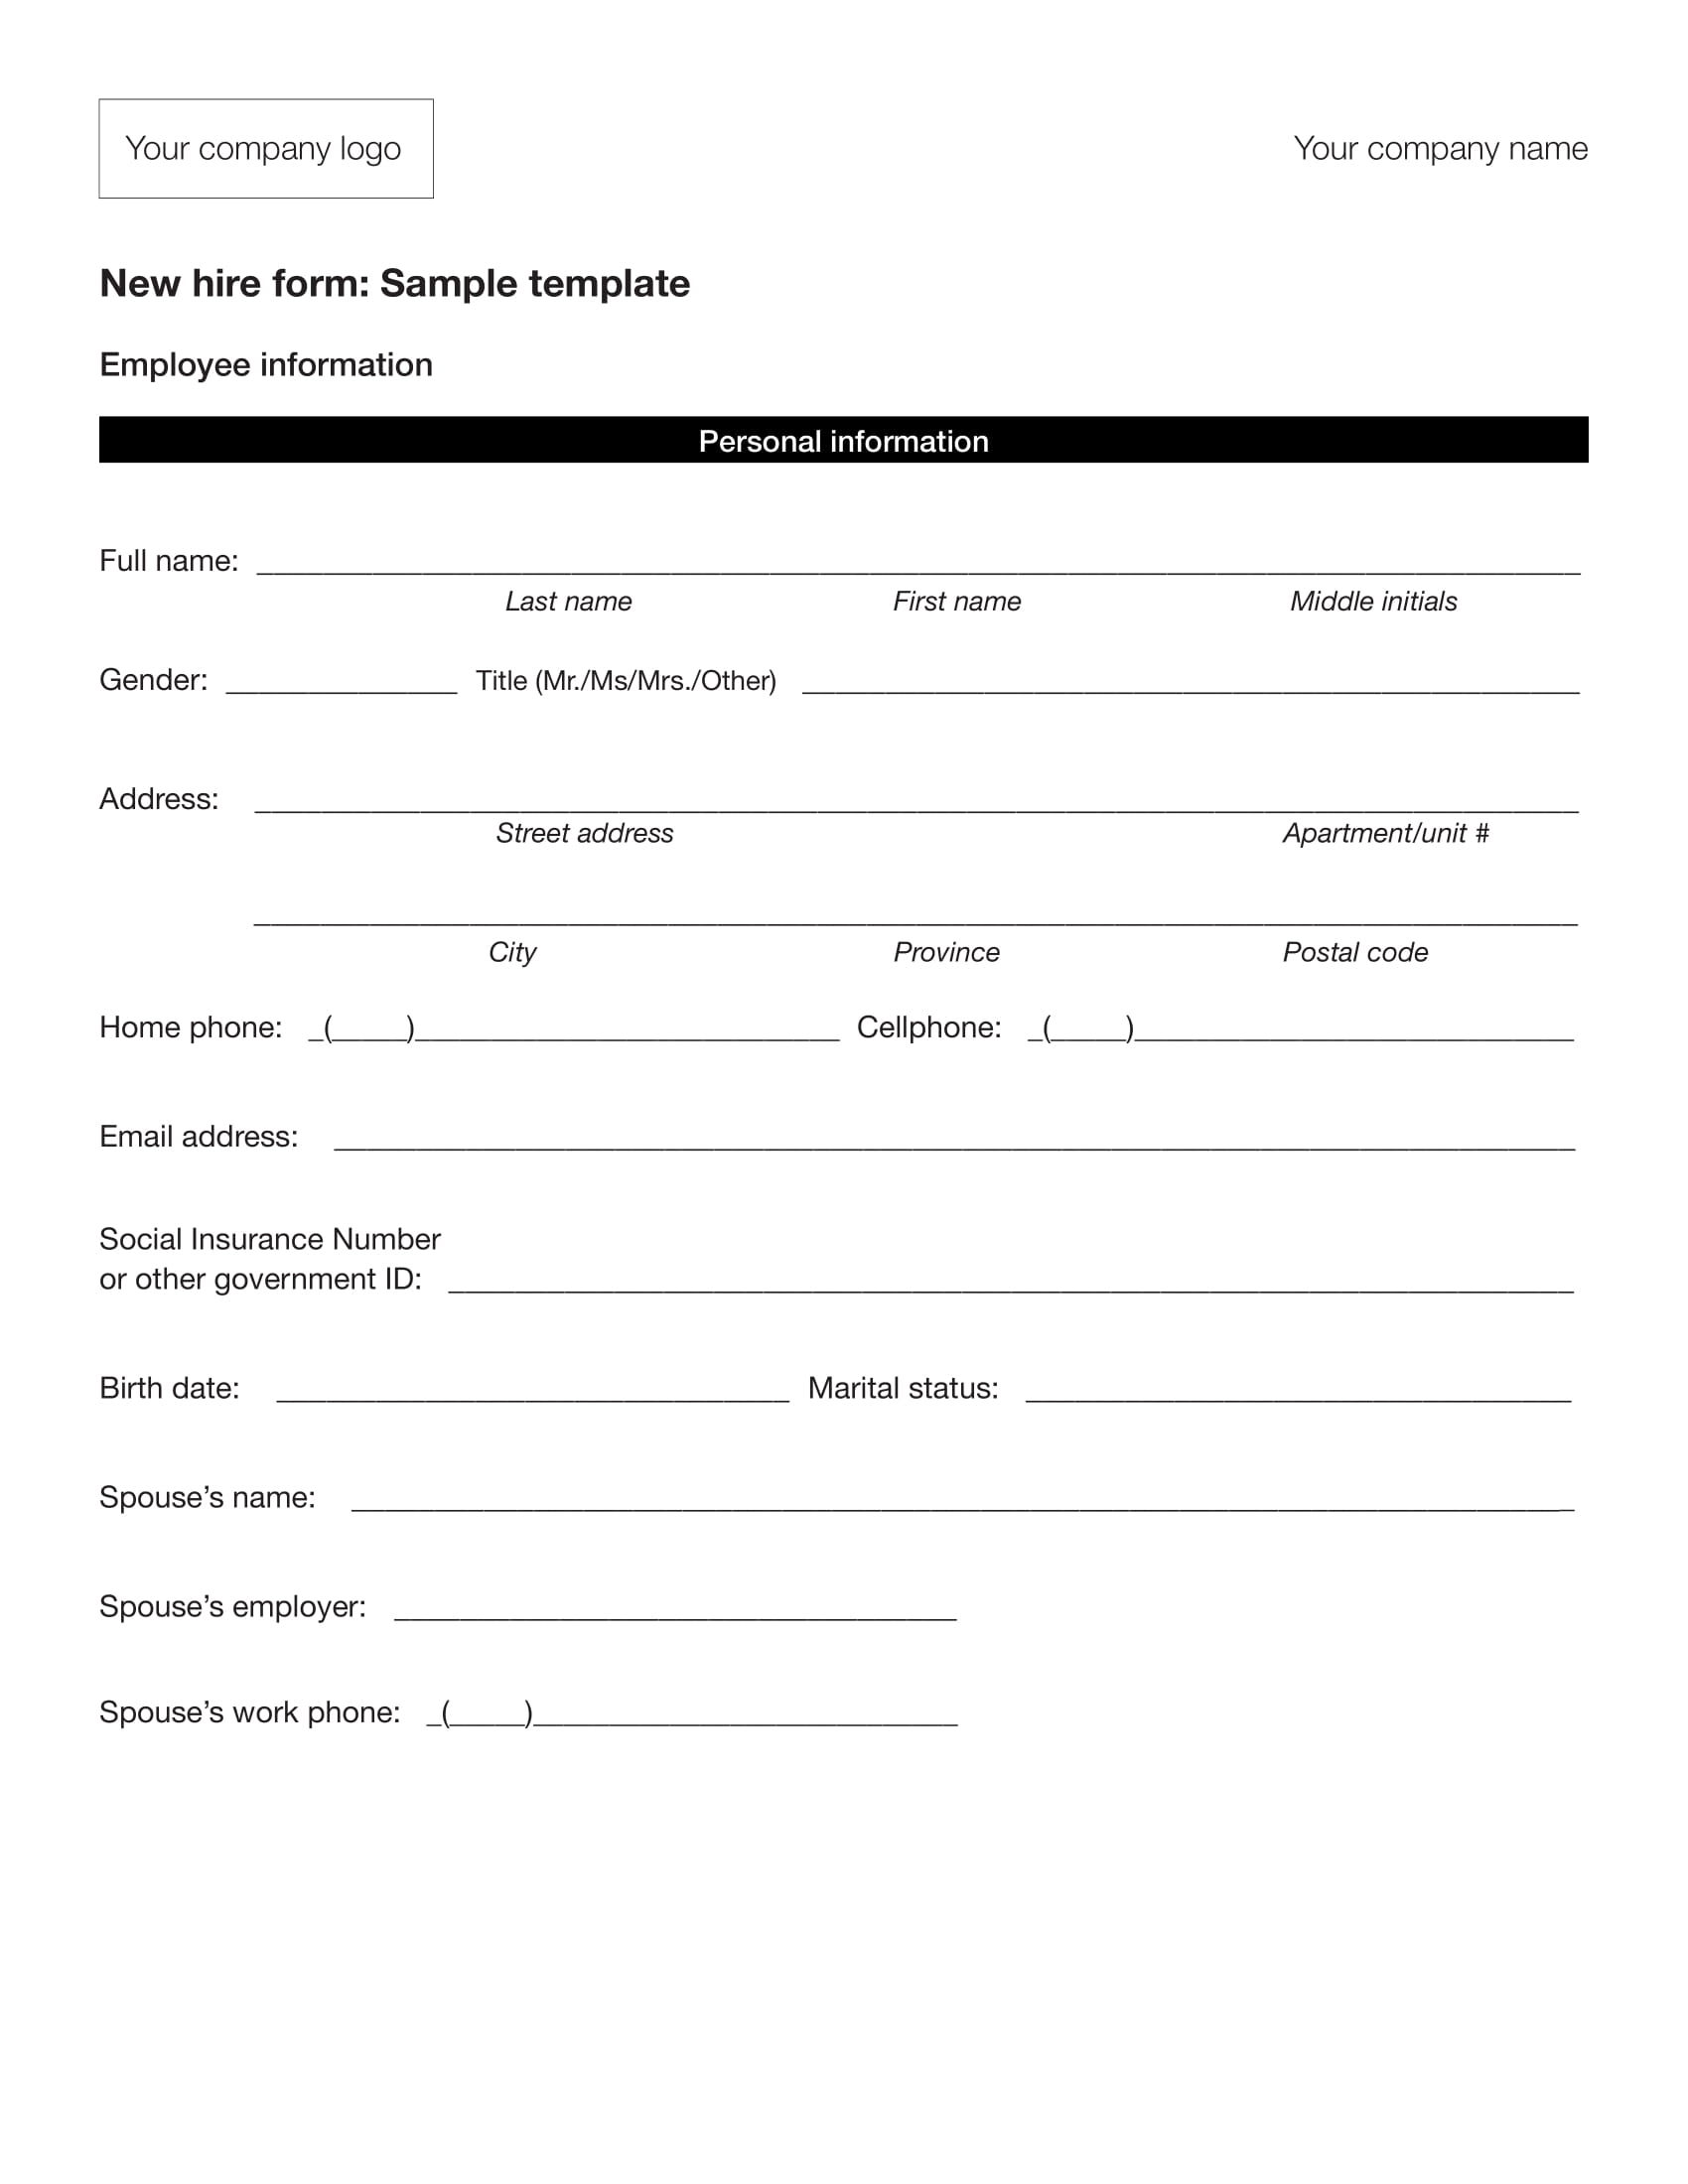 10 employee information form examples pdf